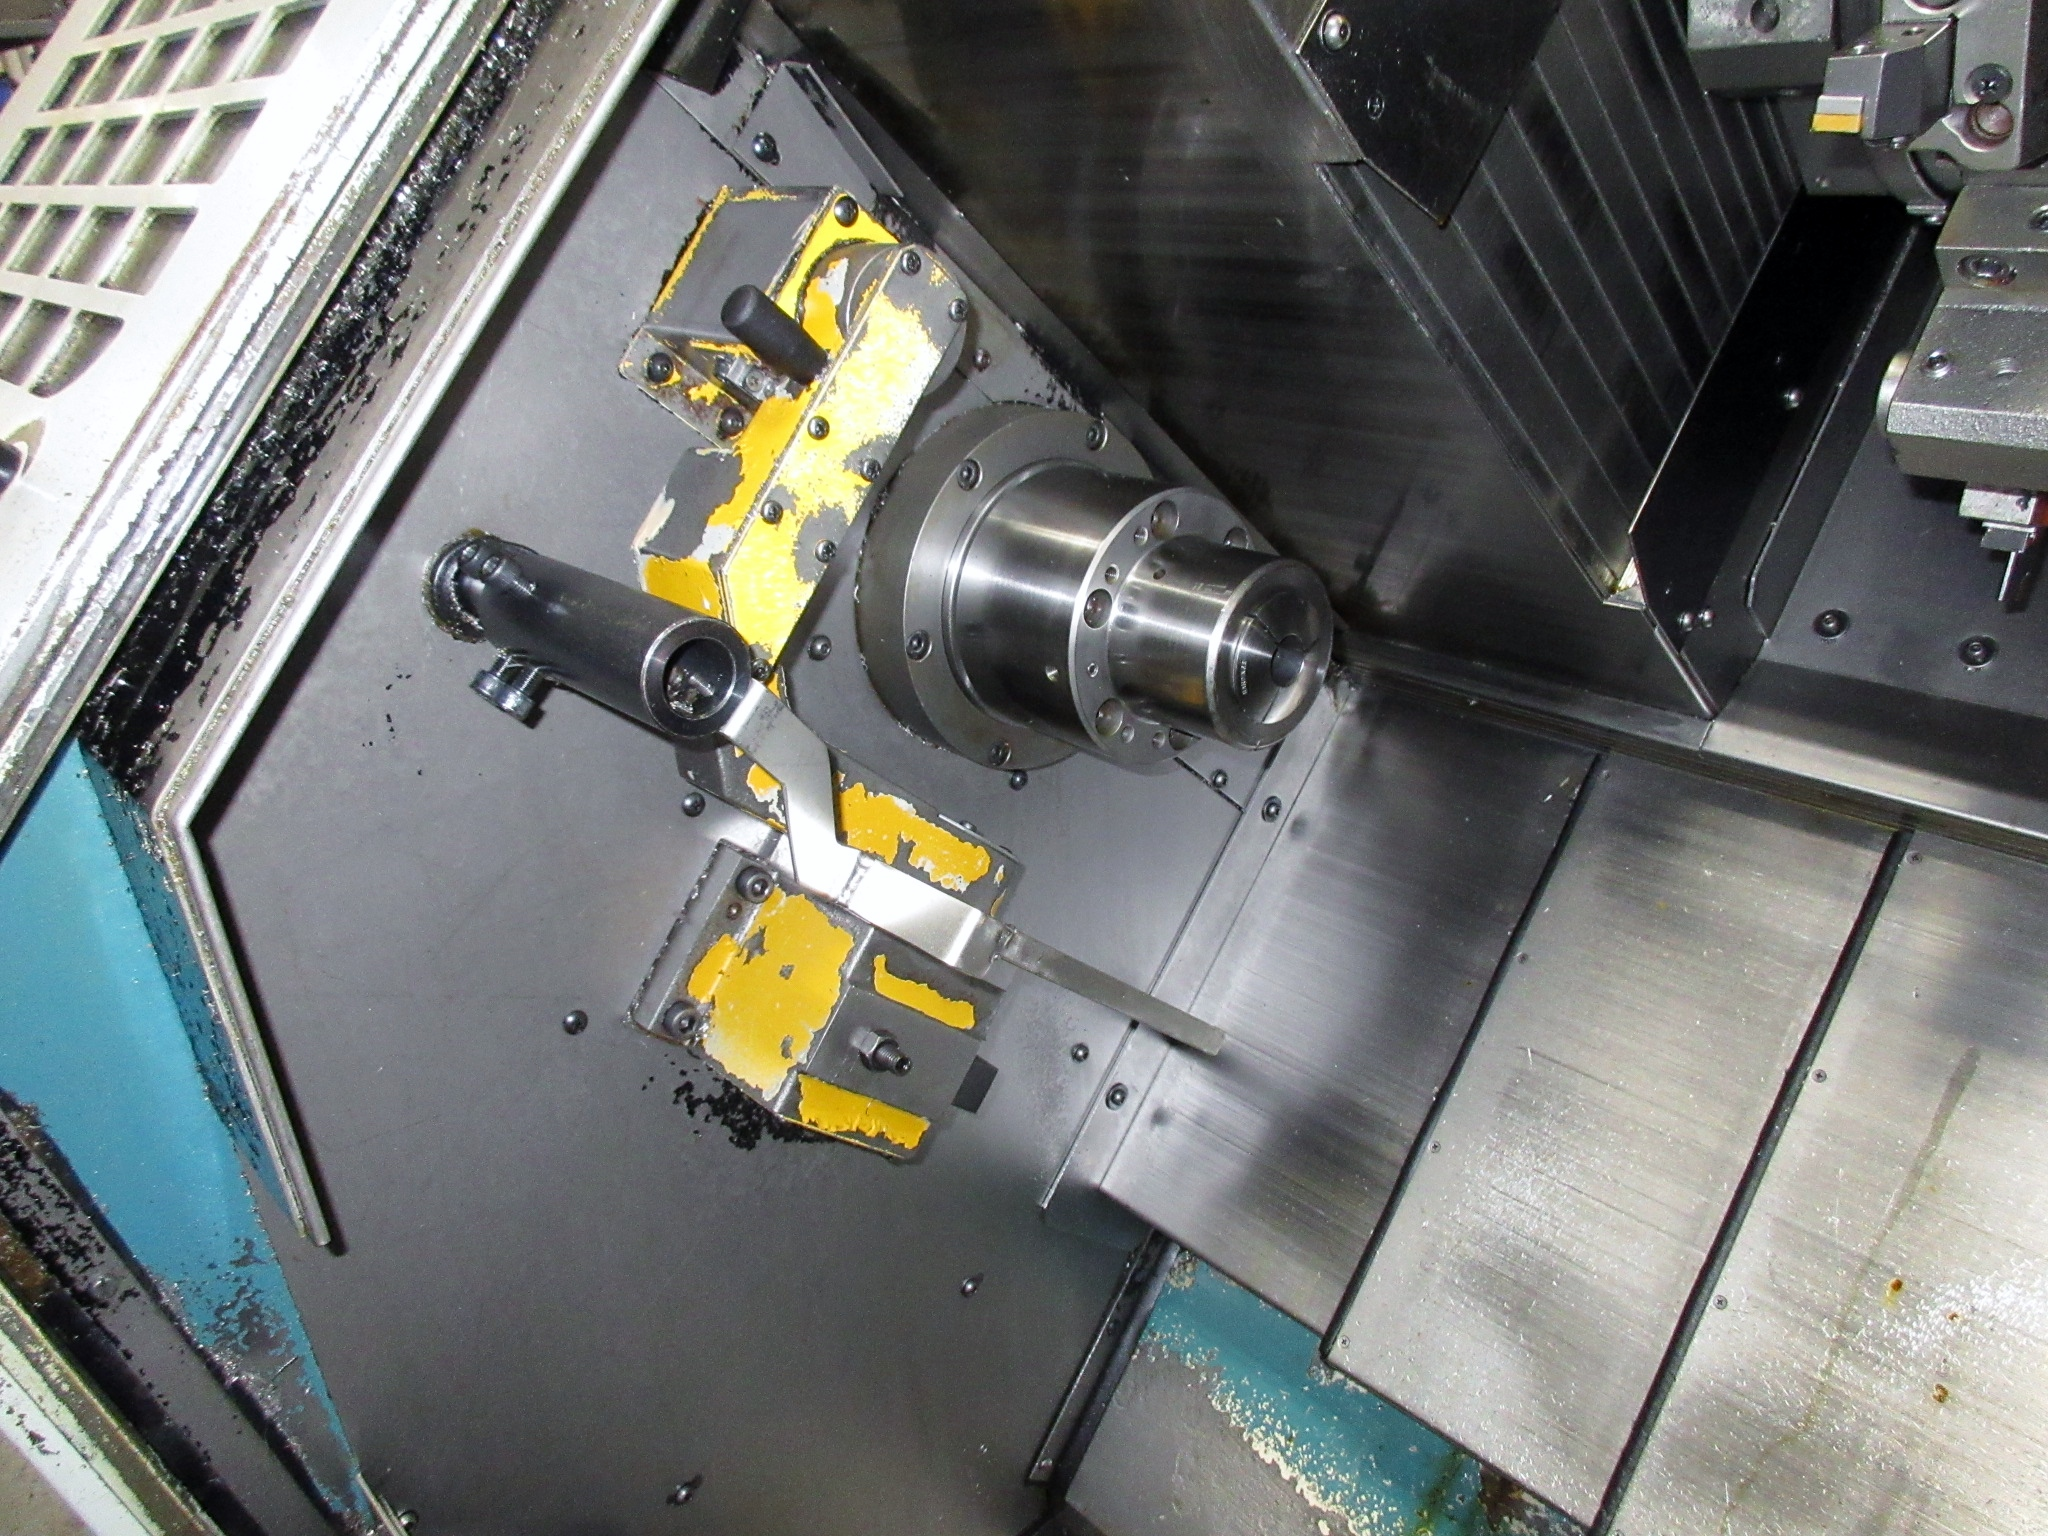 NAKAMURA TOME TW-20 6-AXIS CNC TWIN SPINDLE TURNING CENTER - Image 6 of 17